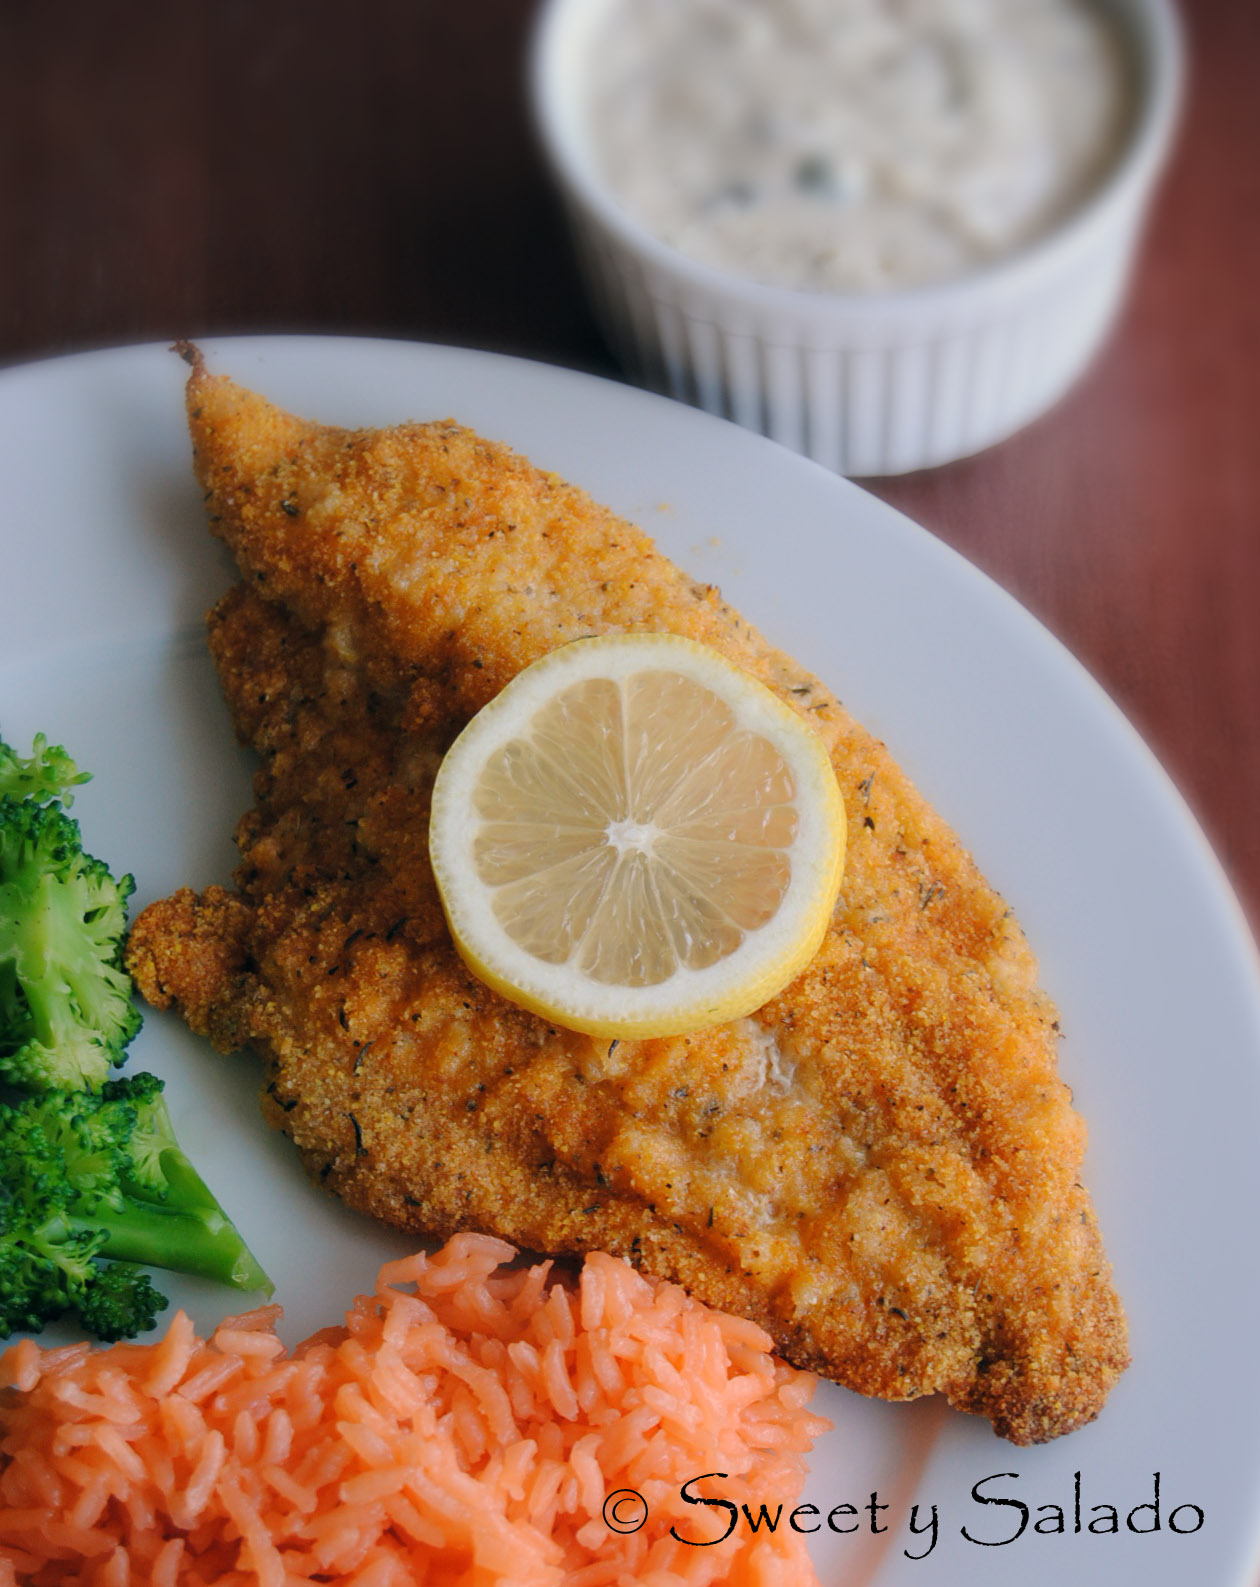 Sweet y Salado: Oven Fried Catfish